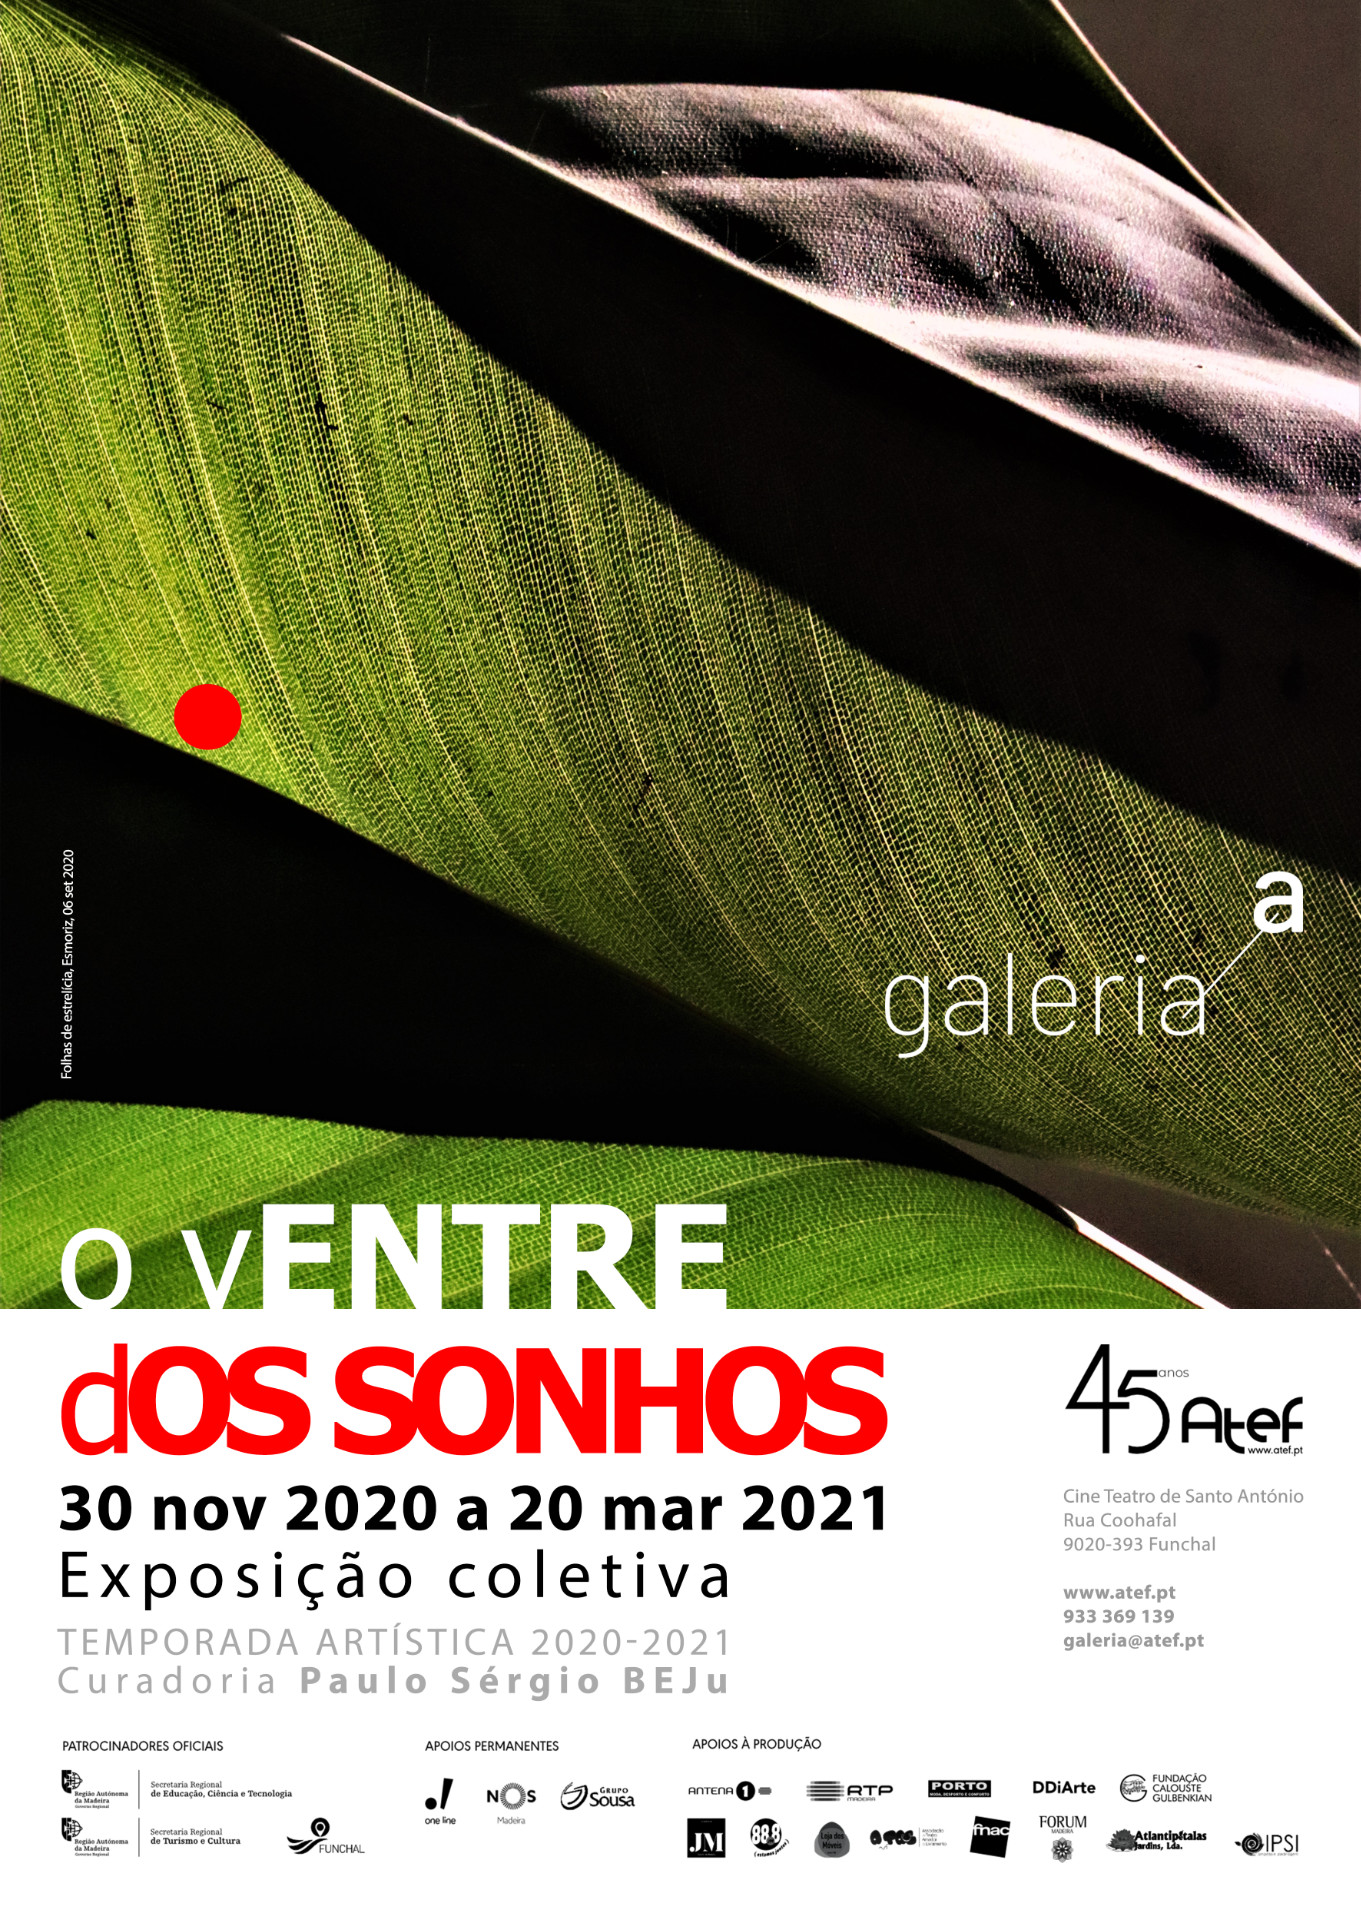 ga-cartaz-30nov2020